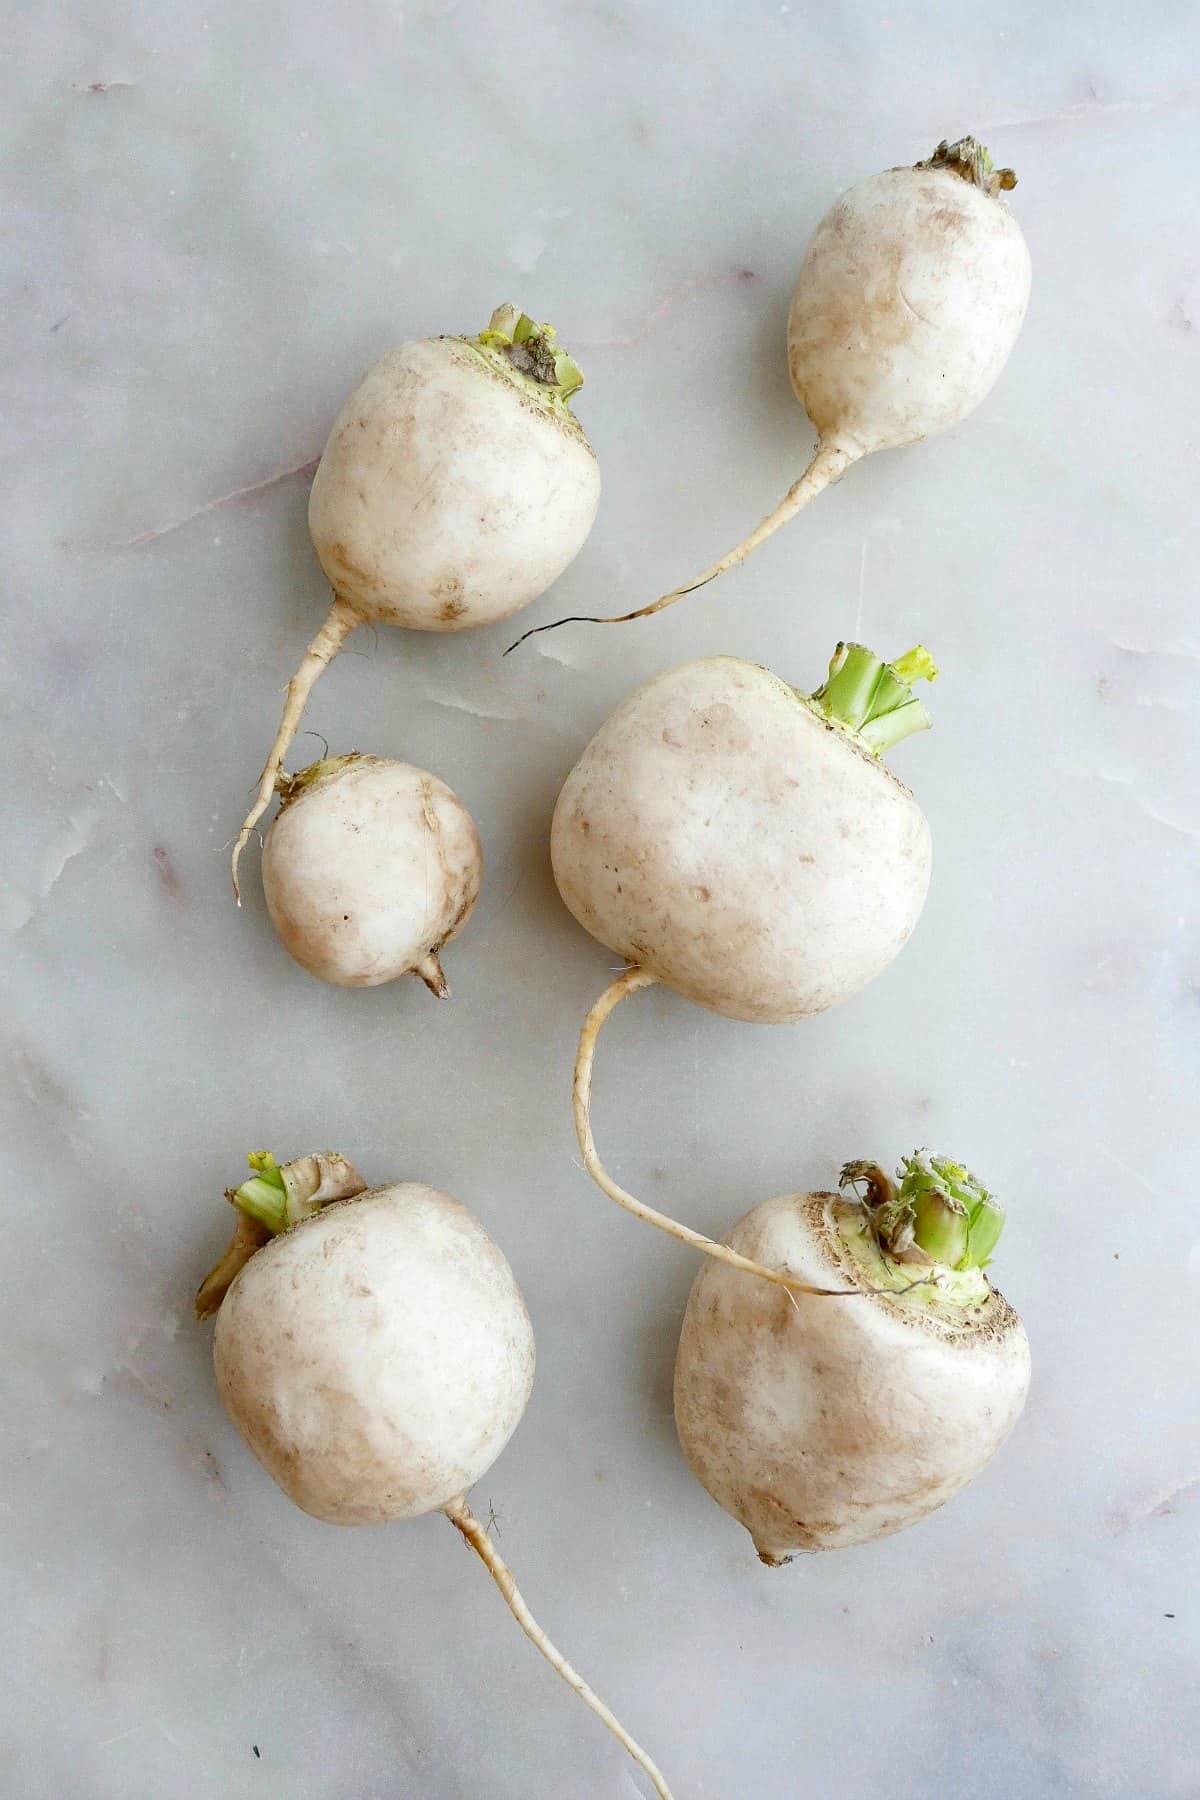 six white Japanese turnips spread out next to each other on a counter